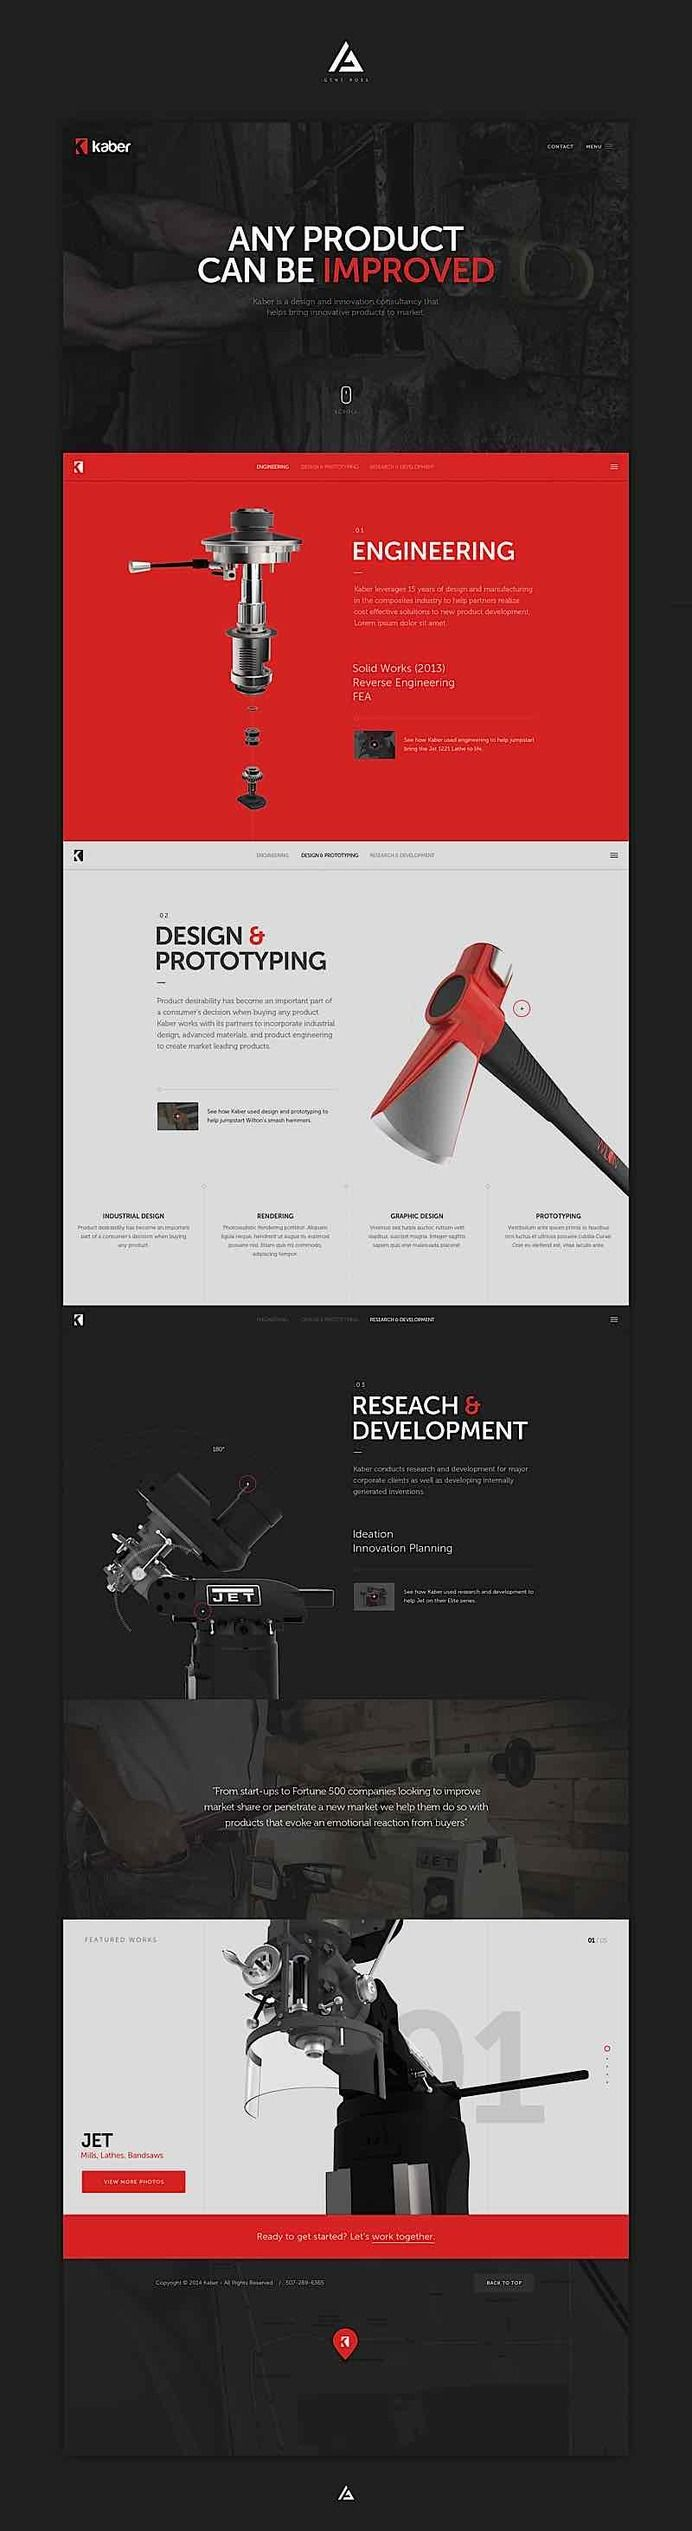 Much whitespace, best-practise-selling-colours (white/red/black ...